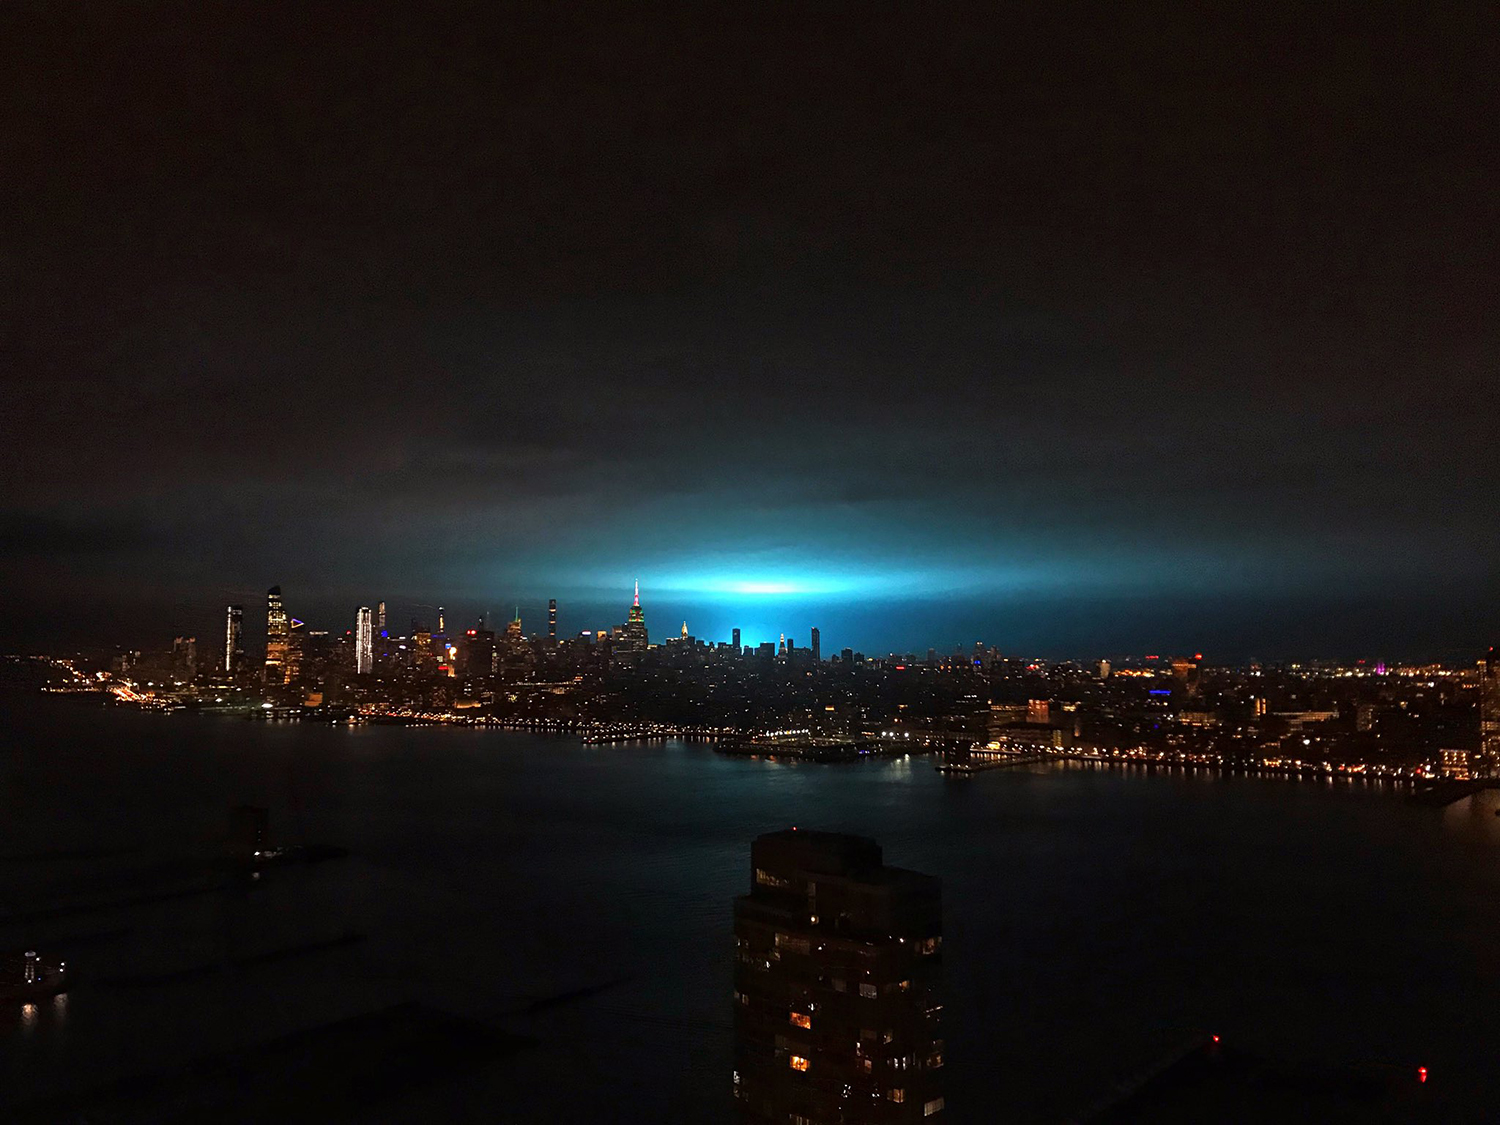 Astoria Powerplant Explosion